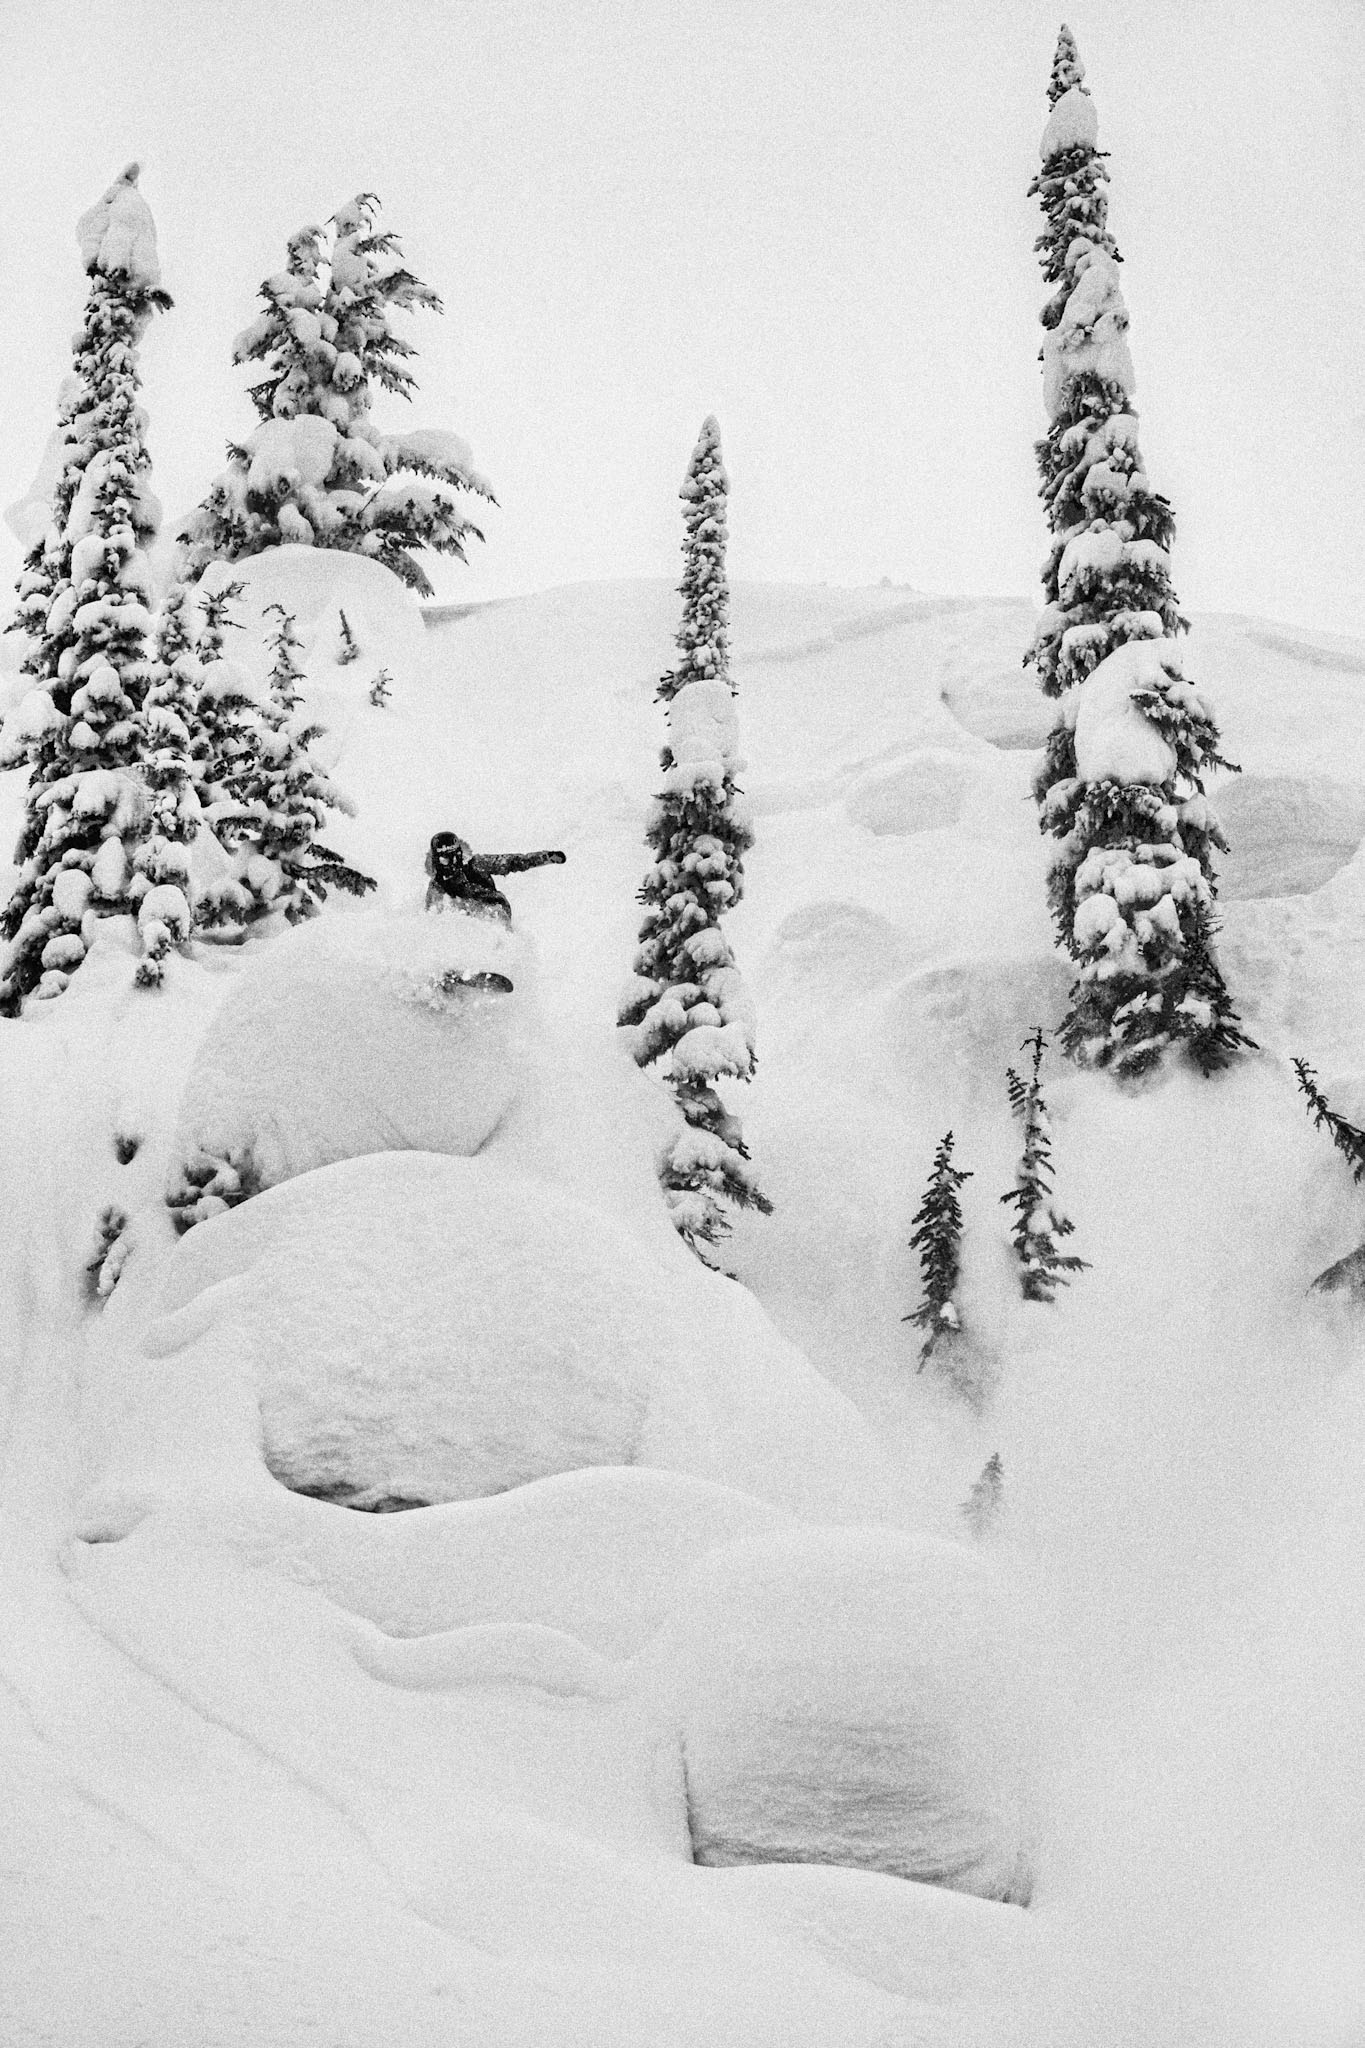 Photo from Revelstoke in Canada by Matt Georges